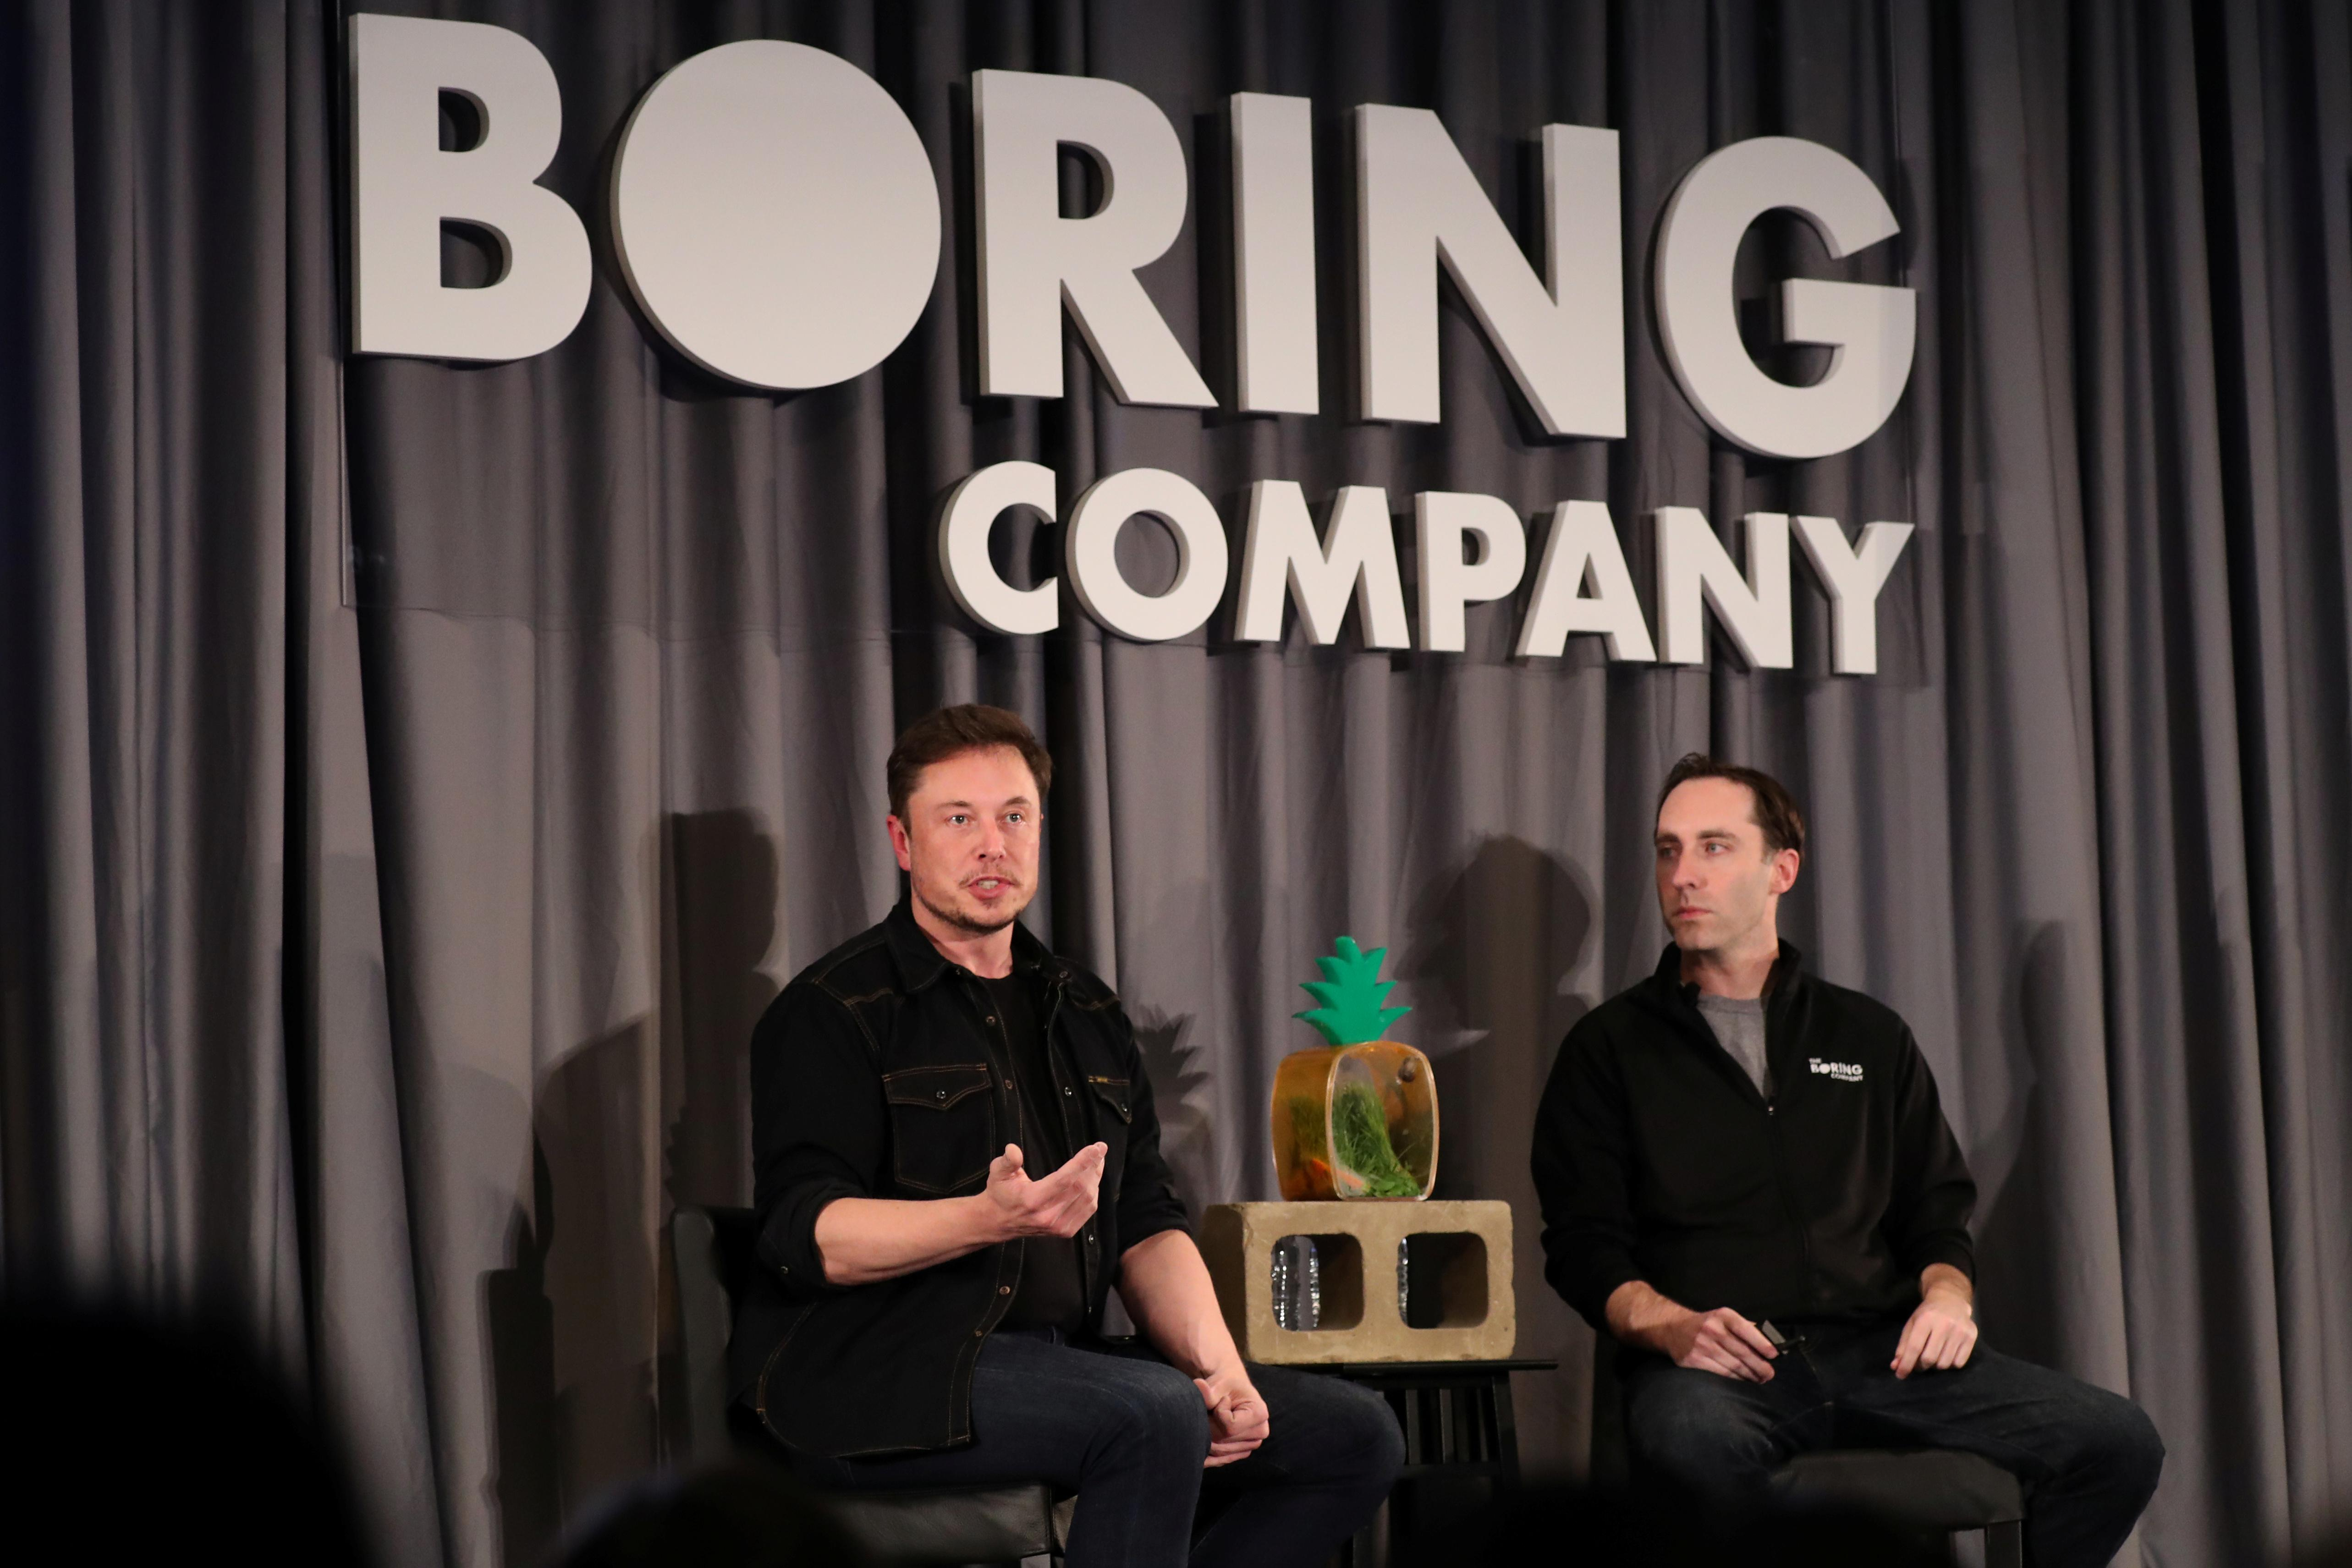 Musk's Boring Company wins bid to build high-speed system in Chicago